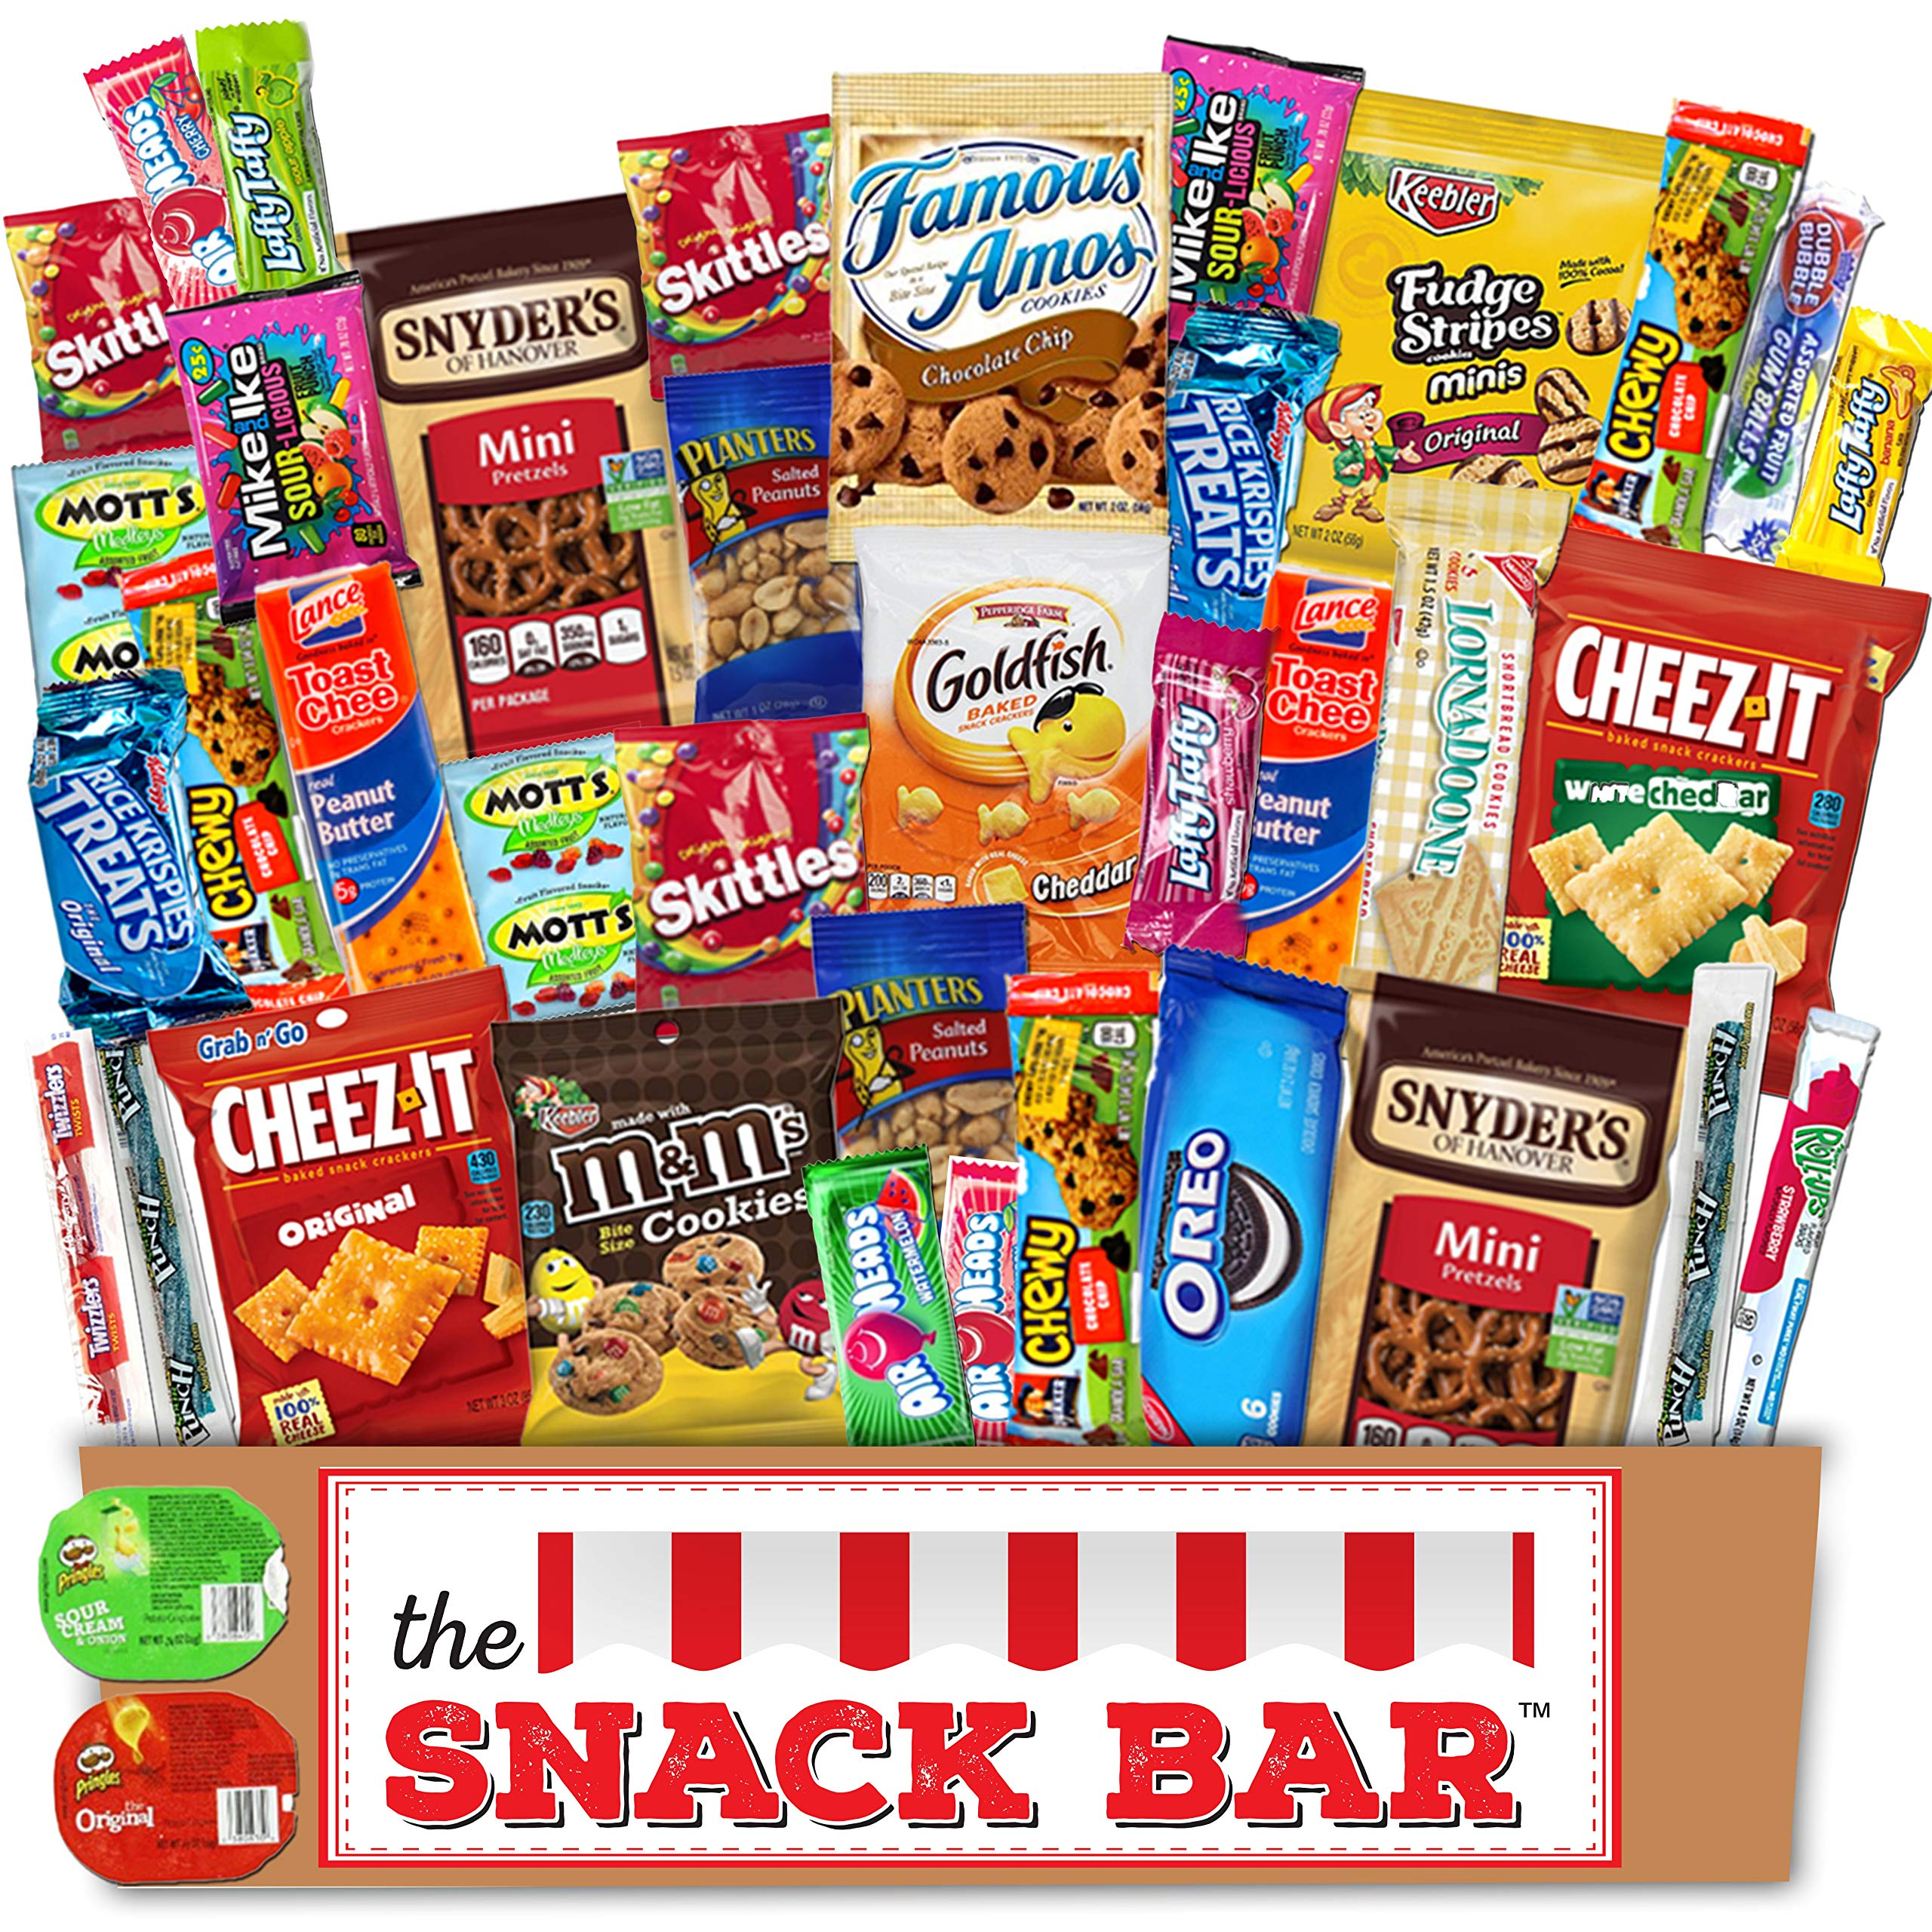 The Snack Bar - Snack Care Package (40 count) - Variety Assortment with American Candy, Fruit Snacks, Gift Snack Box for Lunches, Office, College Students, Road Trips (40) by The Snack Bar